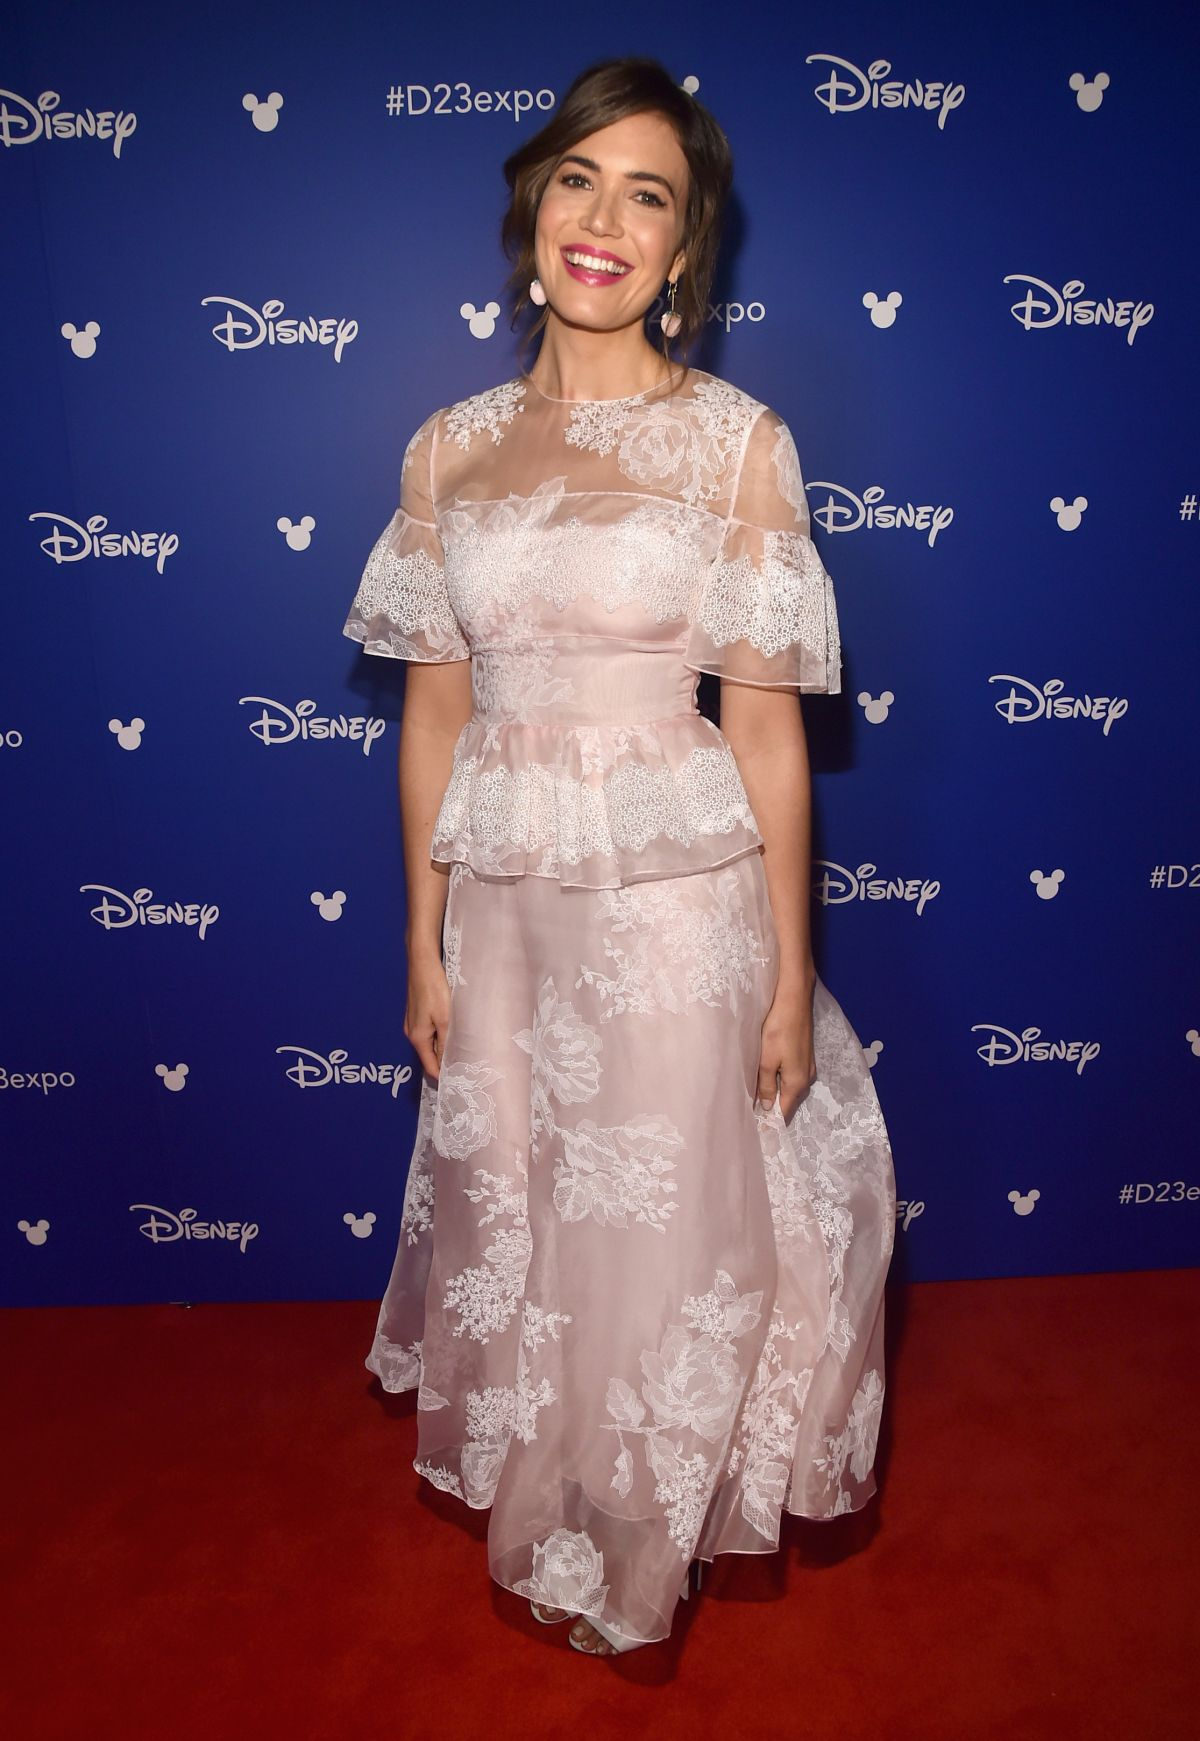 MANDY MOORE at Disney's D23 Expo 2017 in Anaheim 07/15/2017